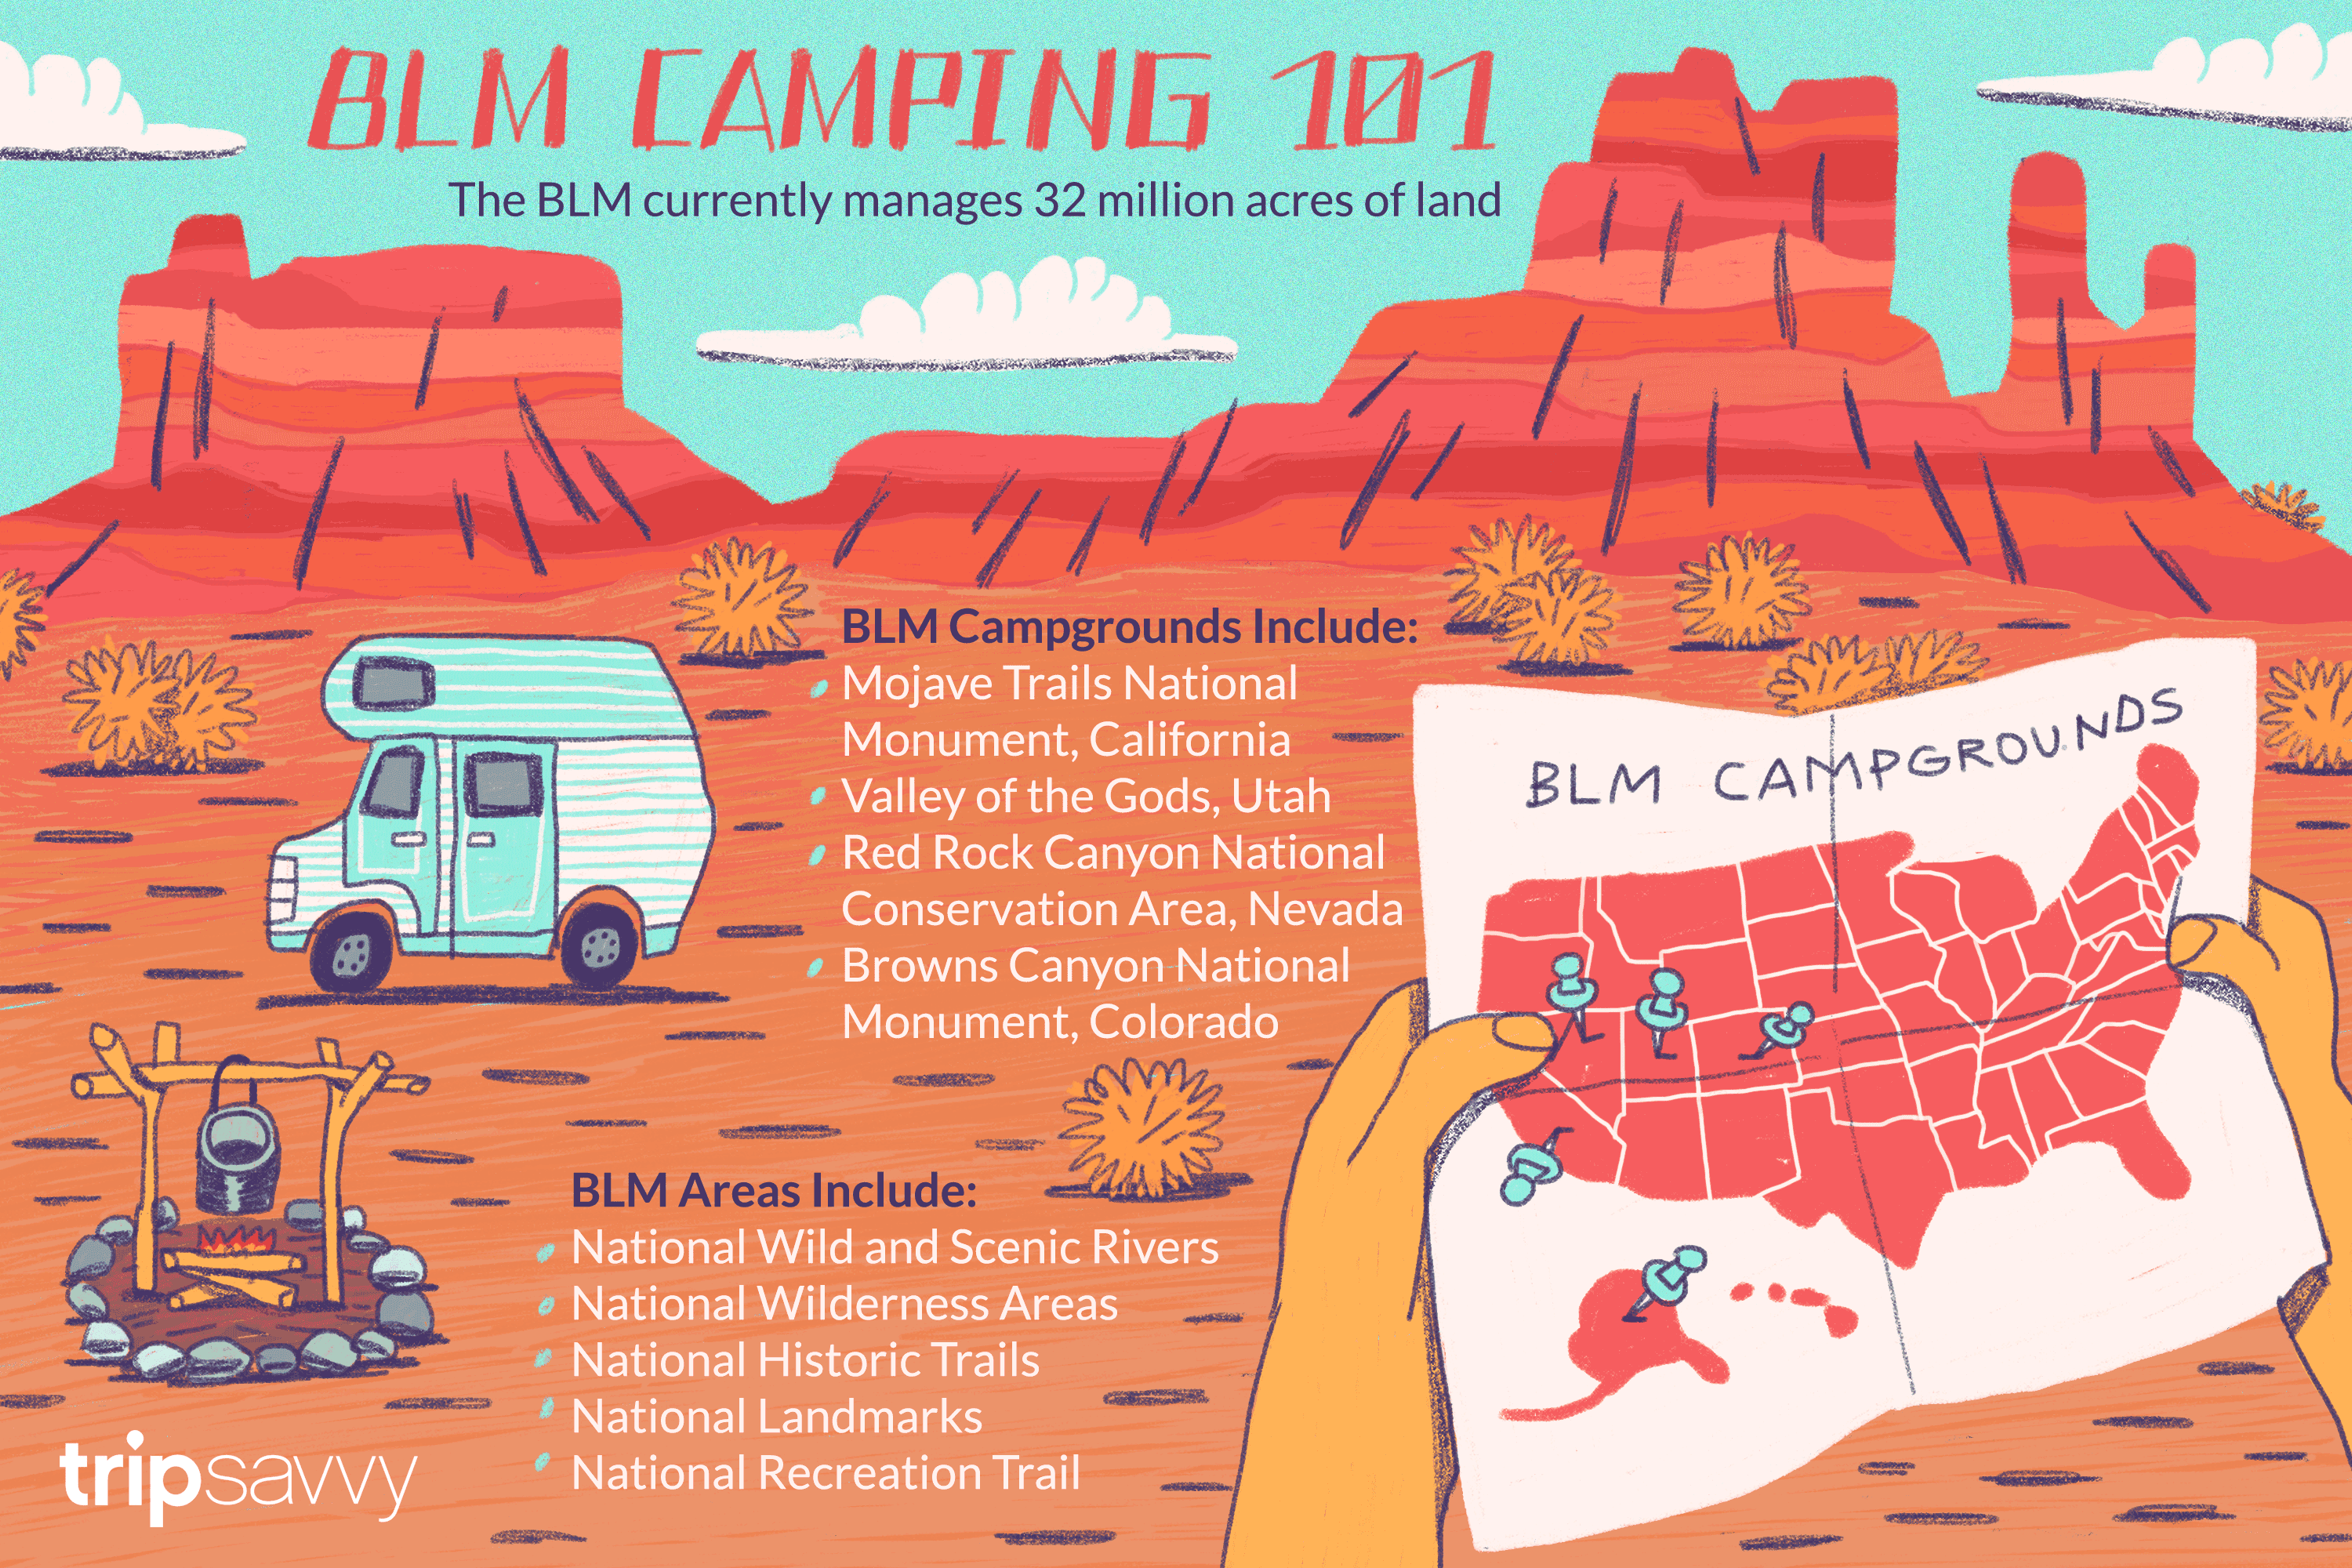 Your Guide To Blm Camping And Recreation